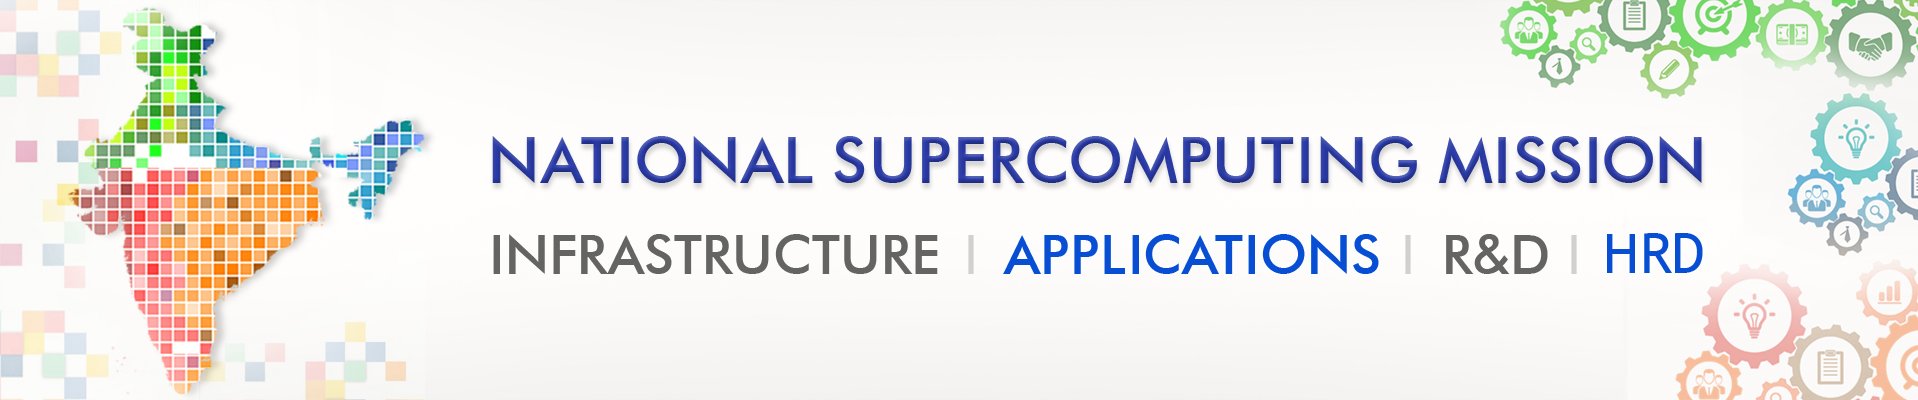 National Supercomputing Mission of India